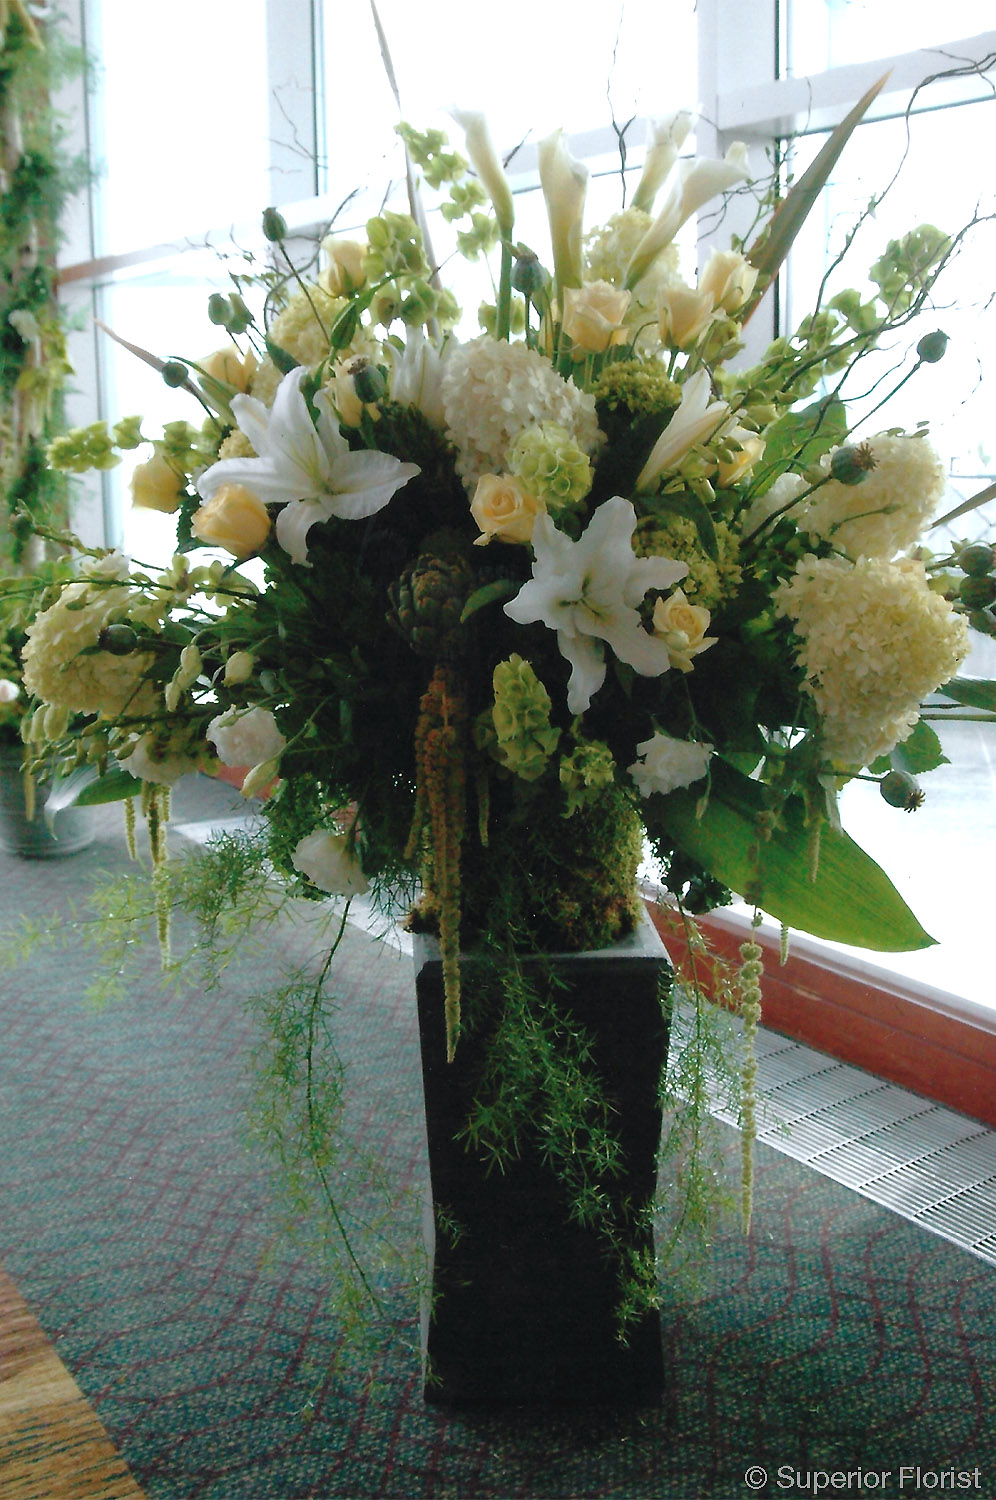 Superior Florist – Wedding Ceremony: Freestanding floral basket for wedding ceremony.